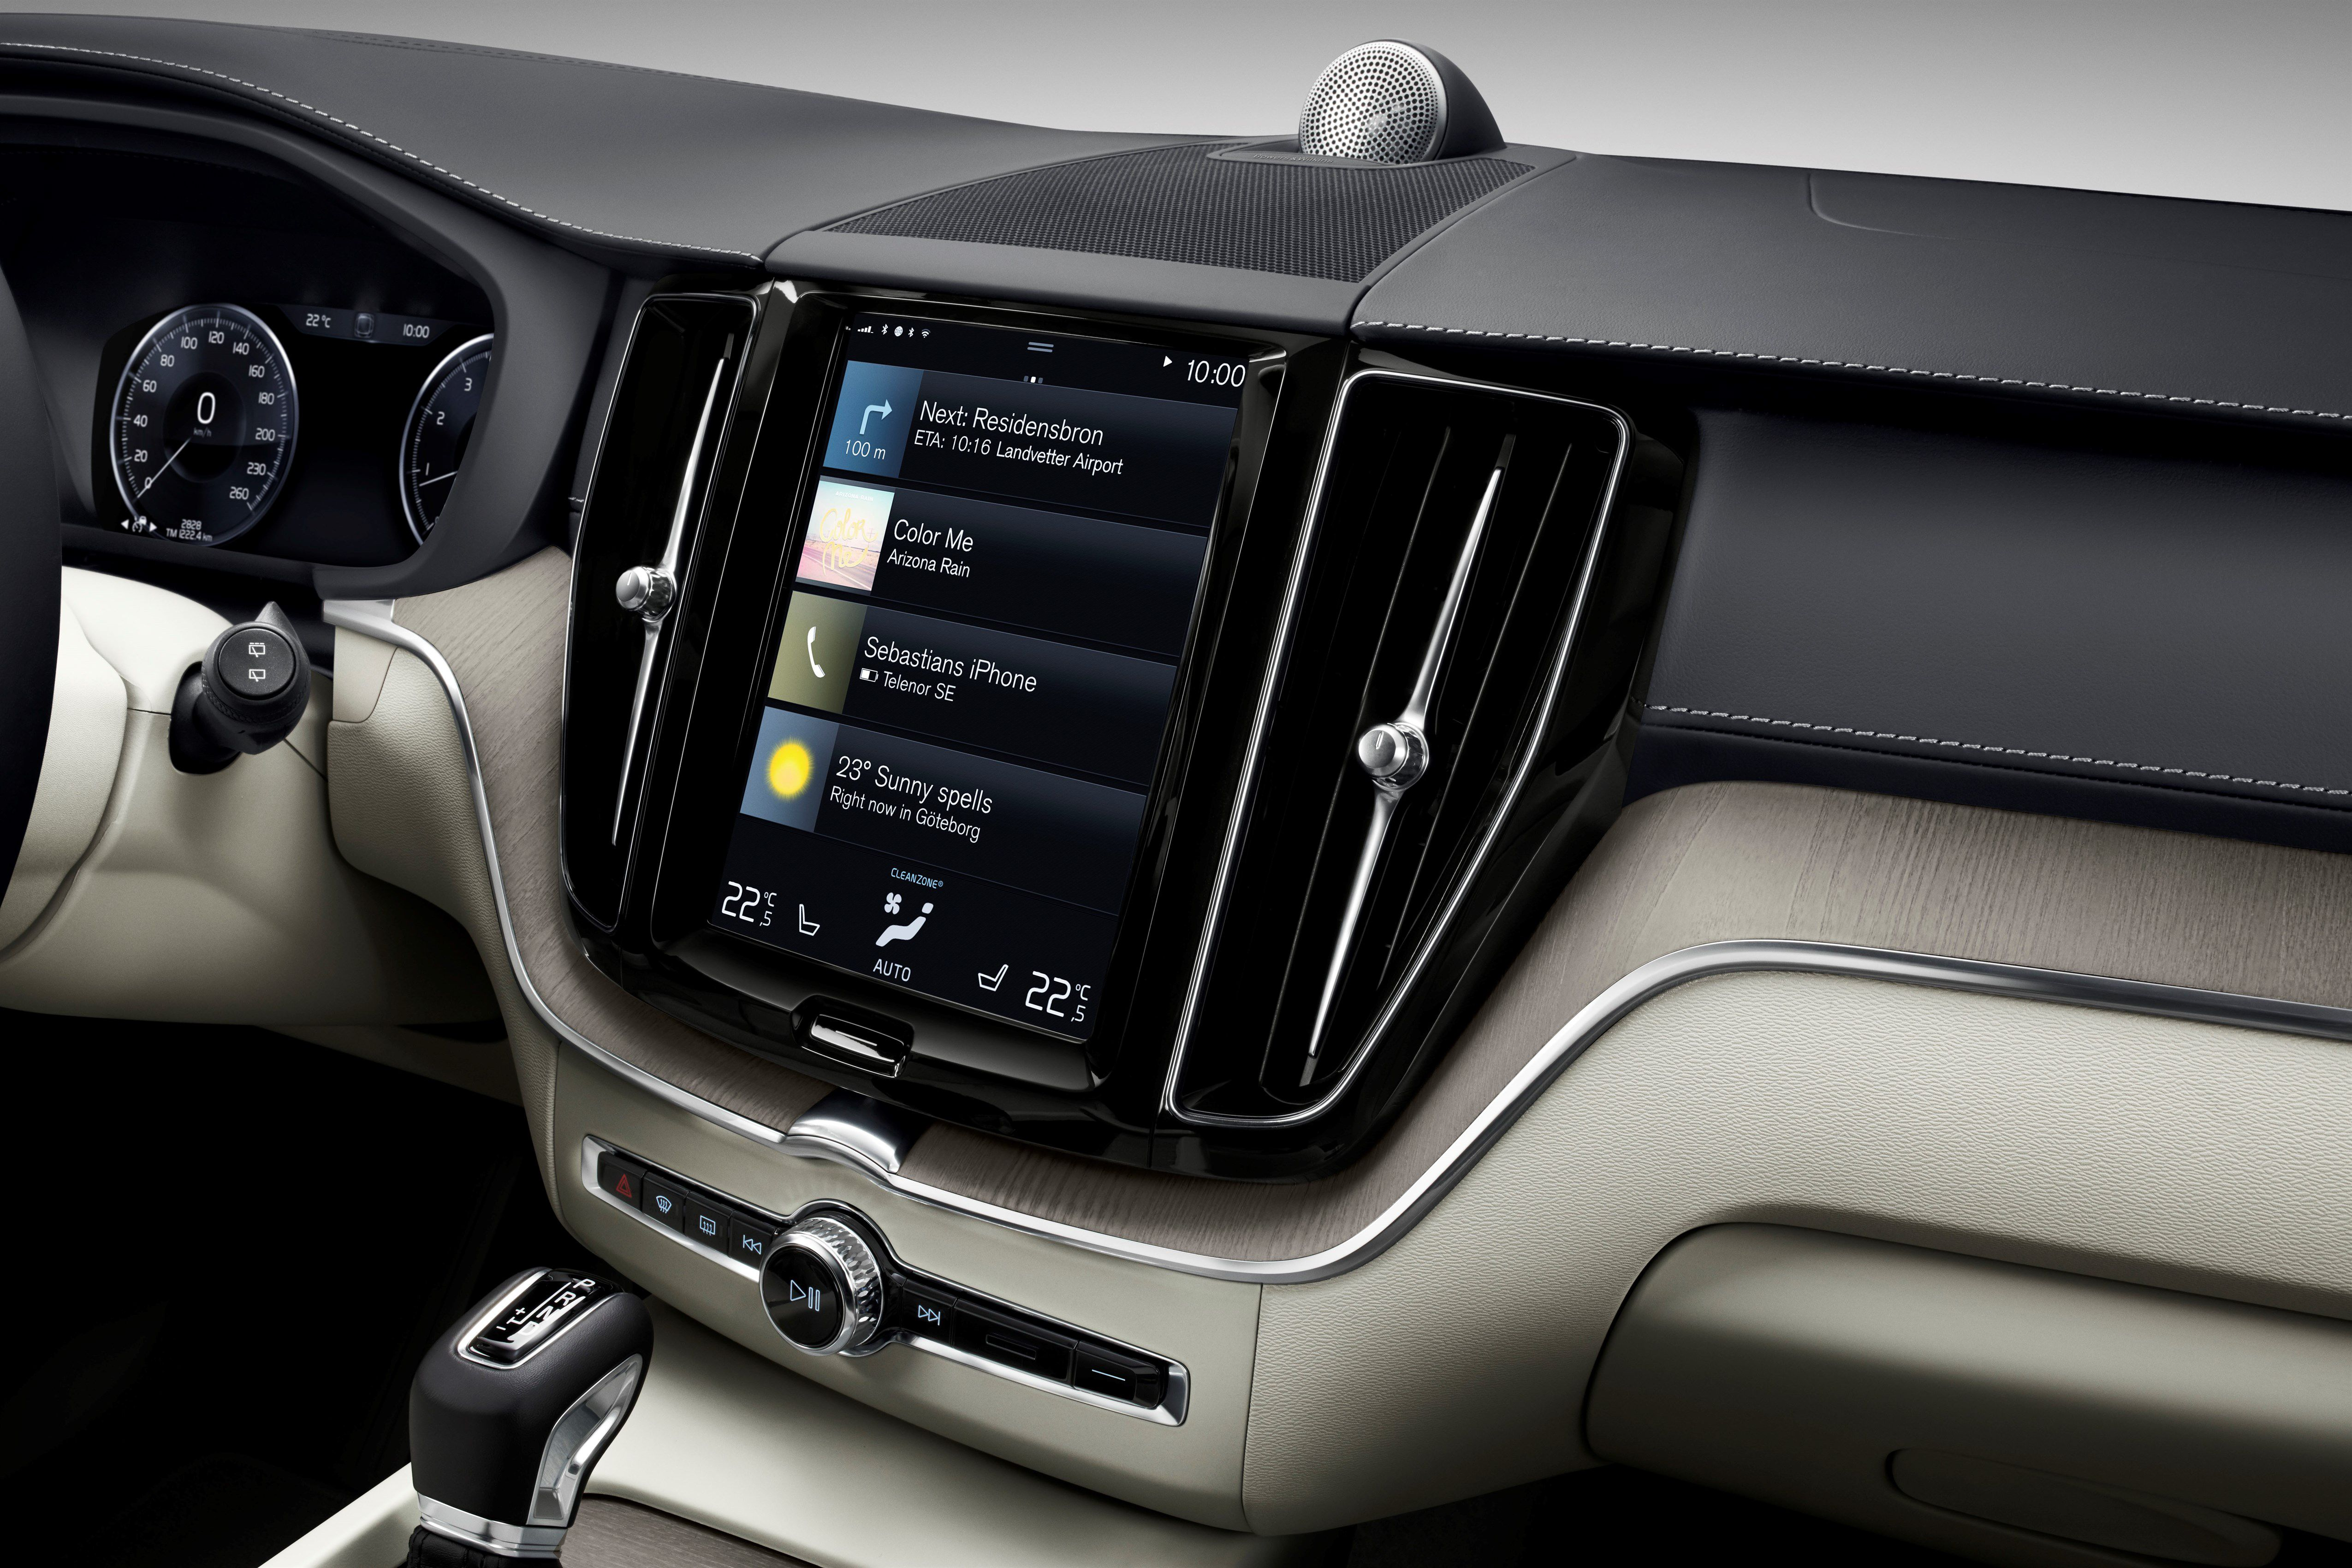 Volvo Xc60 The New Volvo Xc60 One Of The Safest Cars Ever Made Is Fully Loaded With New Technology Steer Assist Has Been Added T Volvo Xc60 Volvo Cars Uk